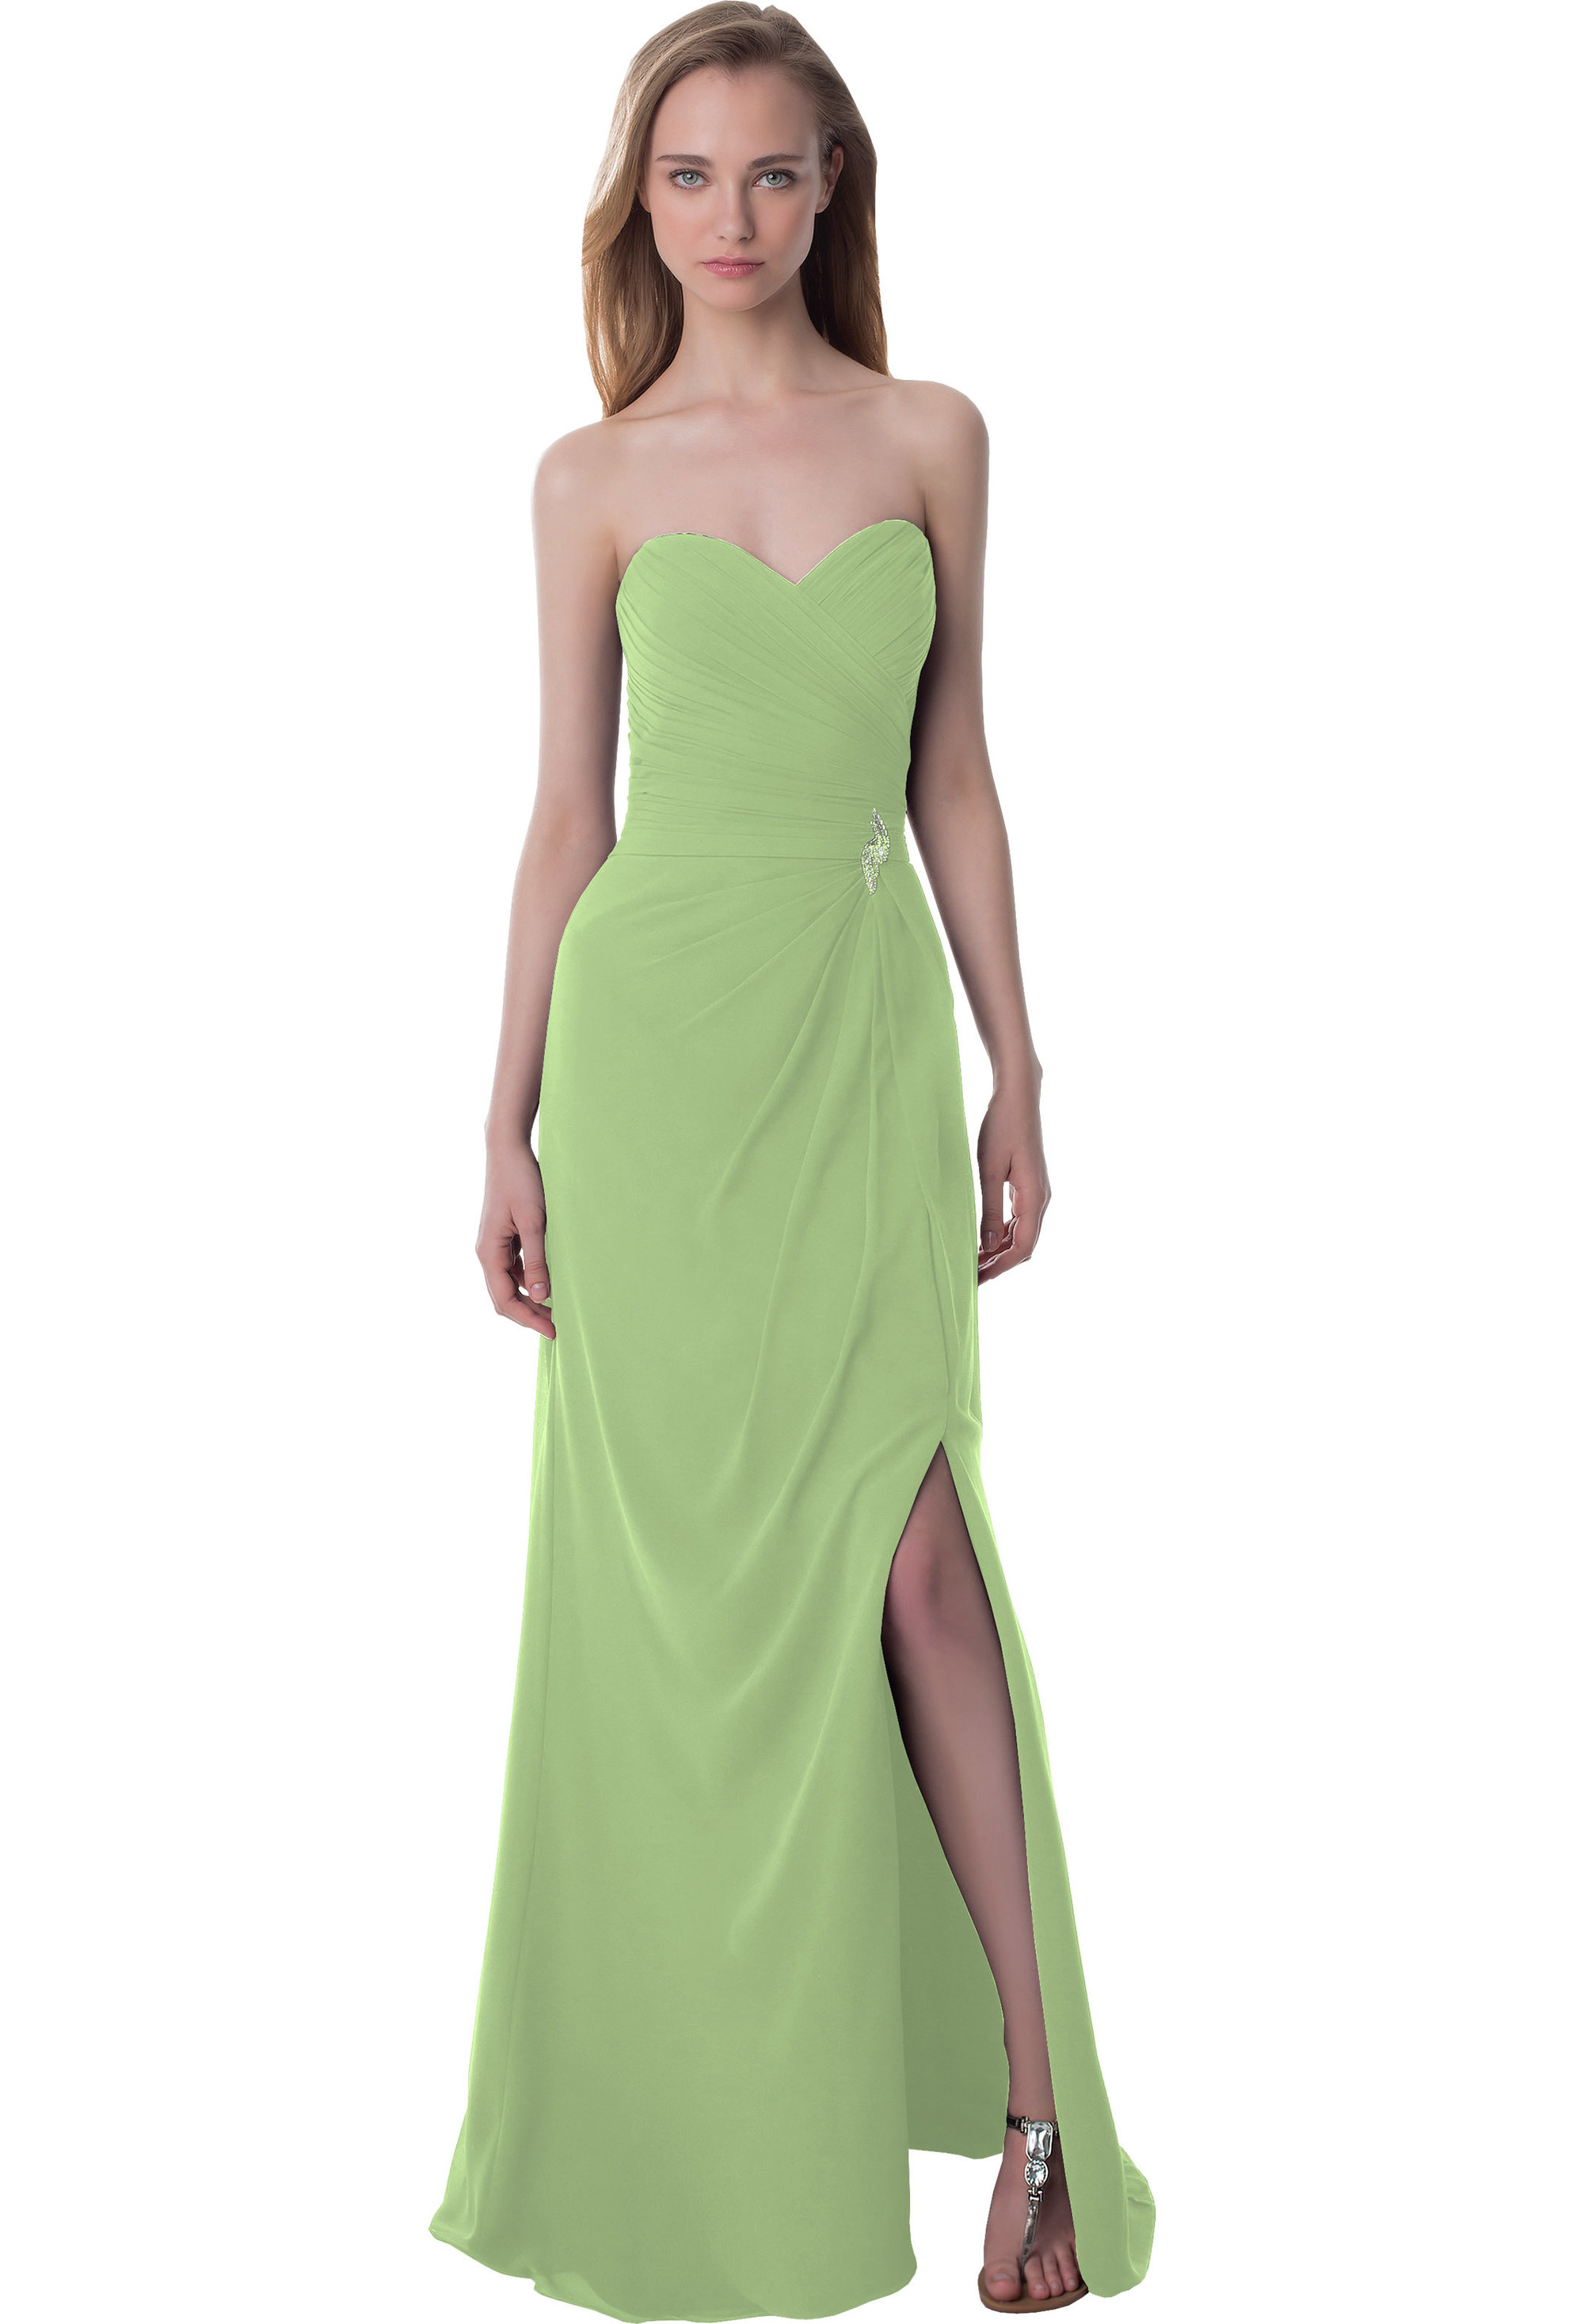 Bill Levkoff PISTACHIO Chiffon Sweetheart Asymmetrical gown, $220.00 Front